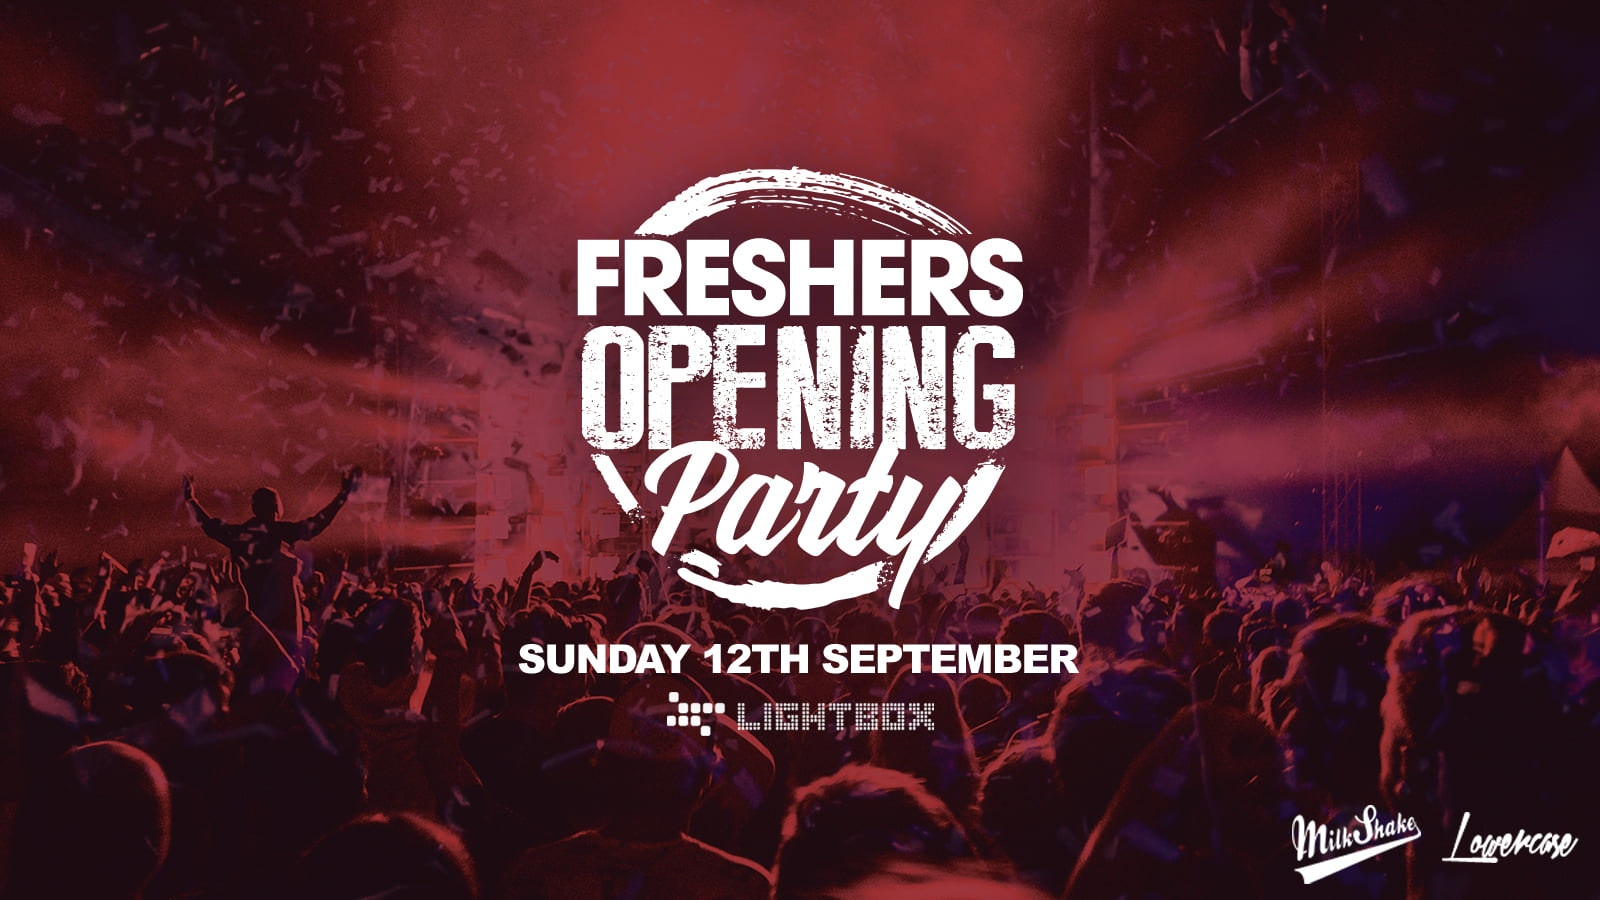 The Official Freshers Opening Party 2021 ⚡ Tickets Out Now!